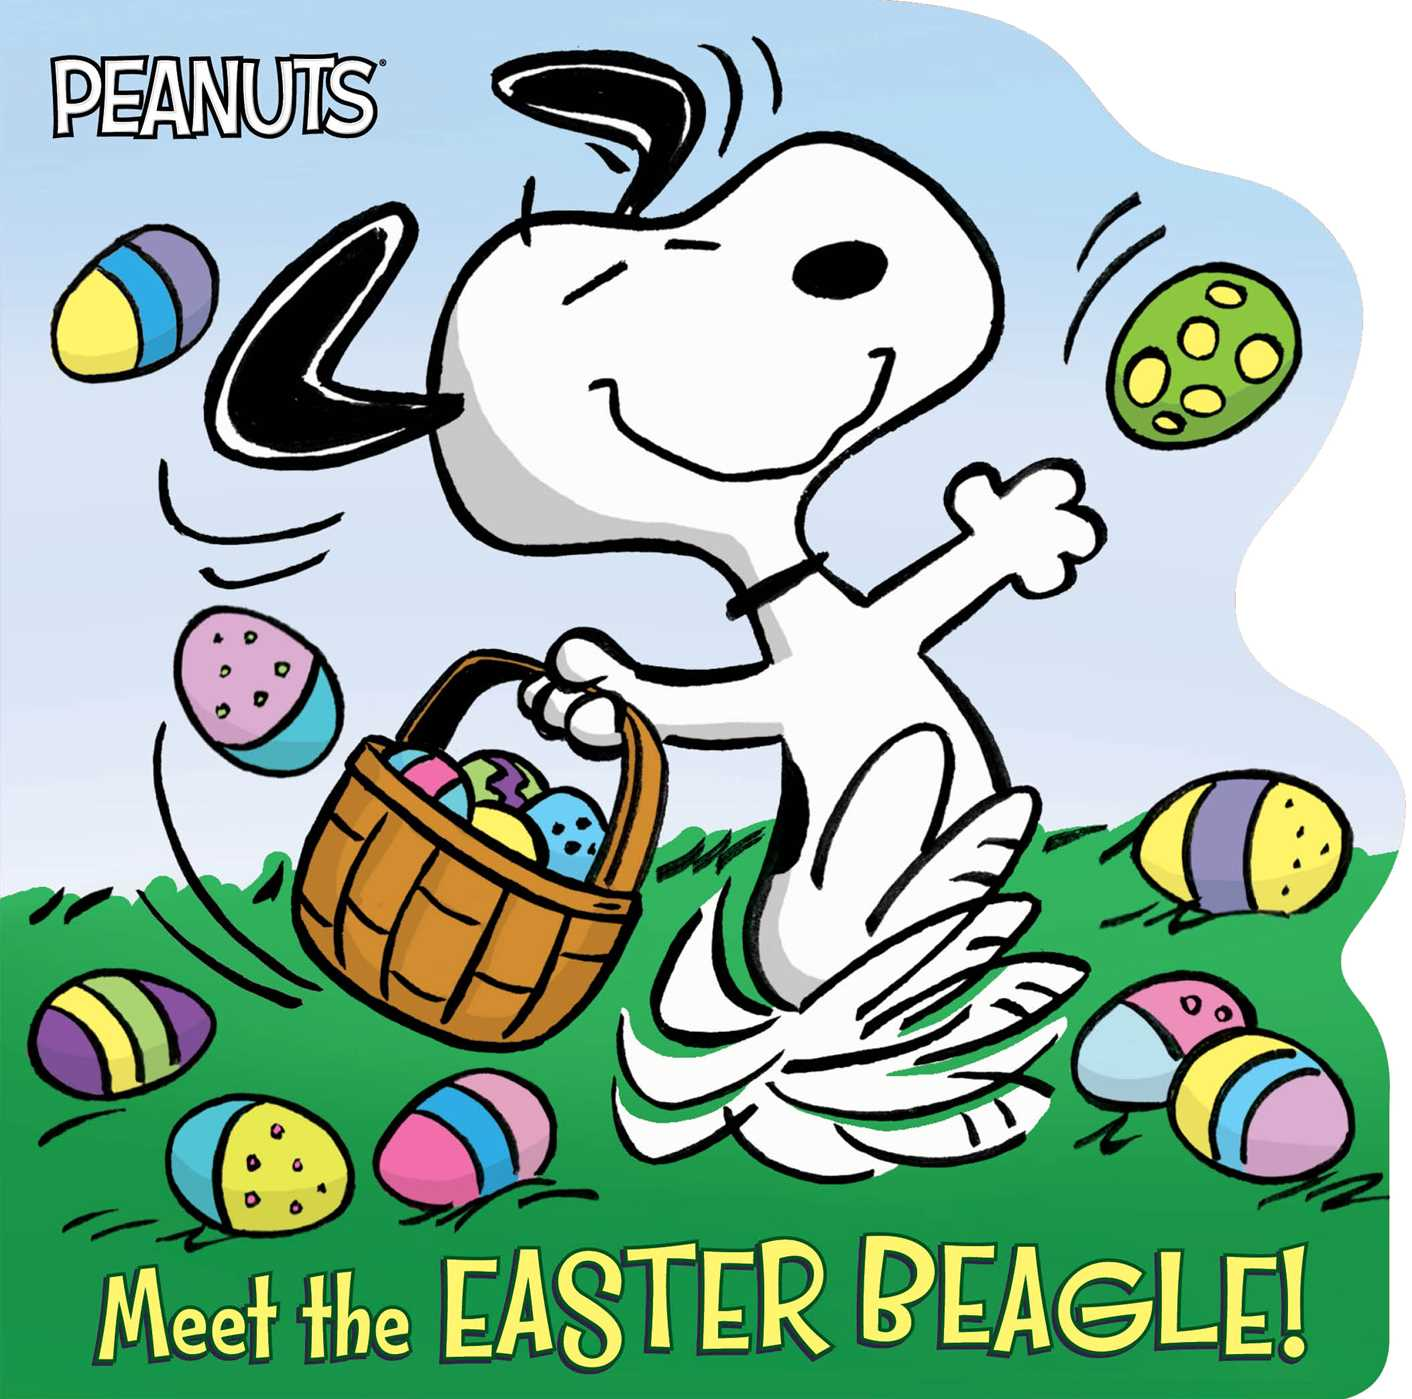 Free Easter Beagle Cliparts, Download Free Clip Art, Free.